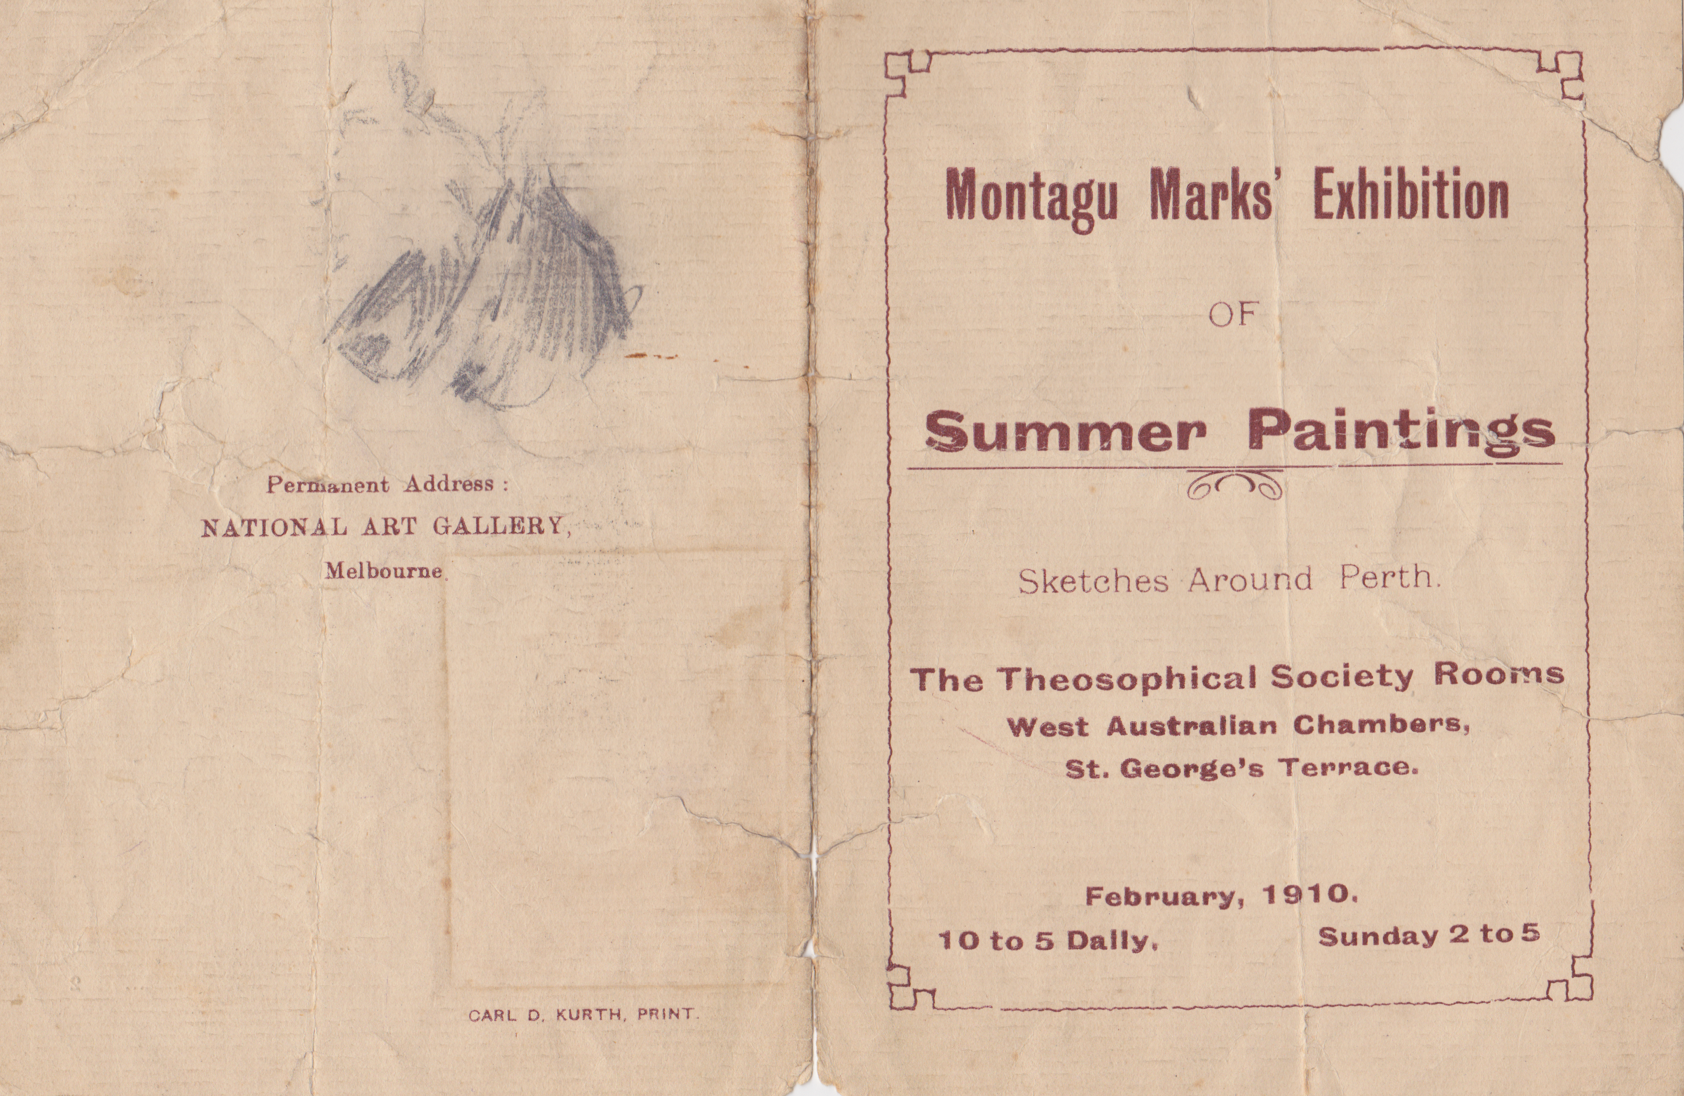 1910 catalogue of Montague Marks exhibition